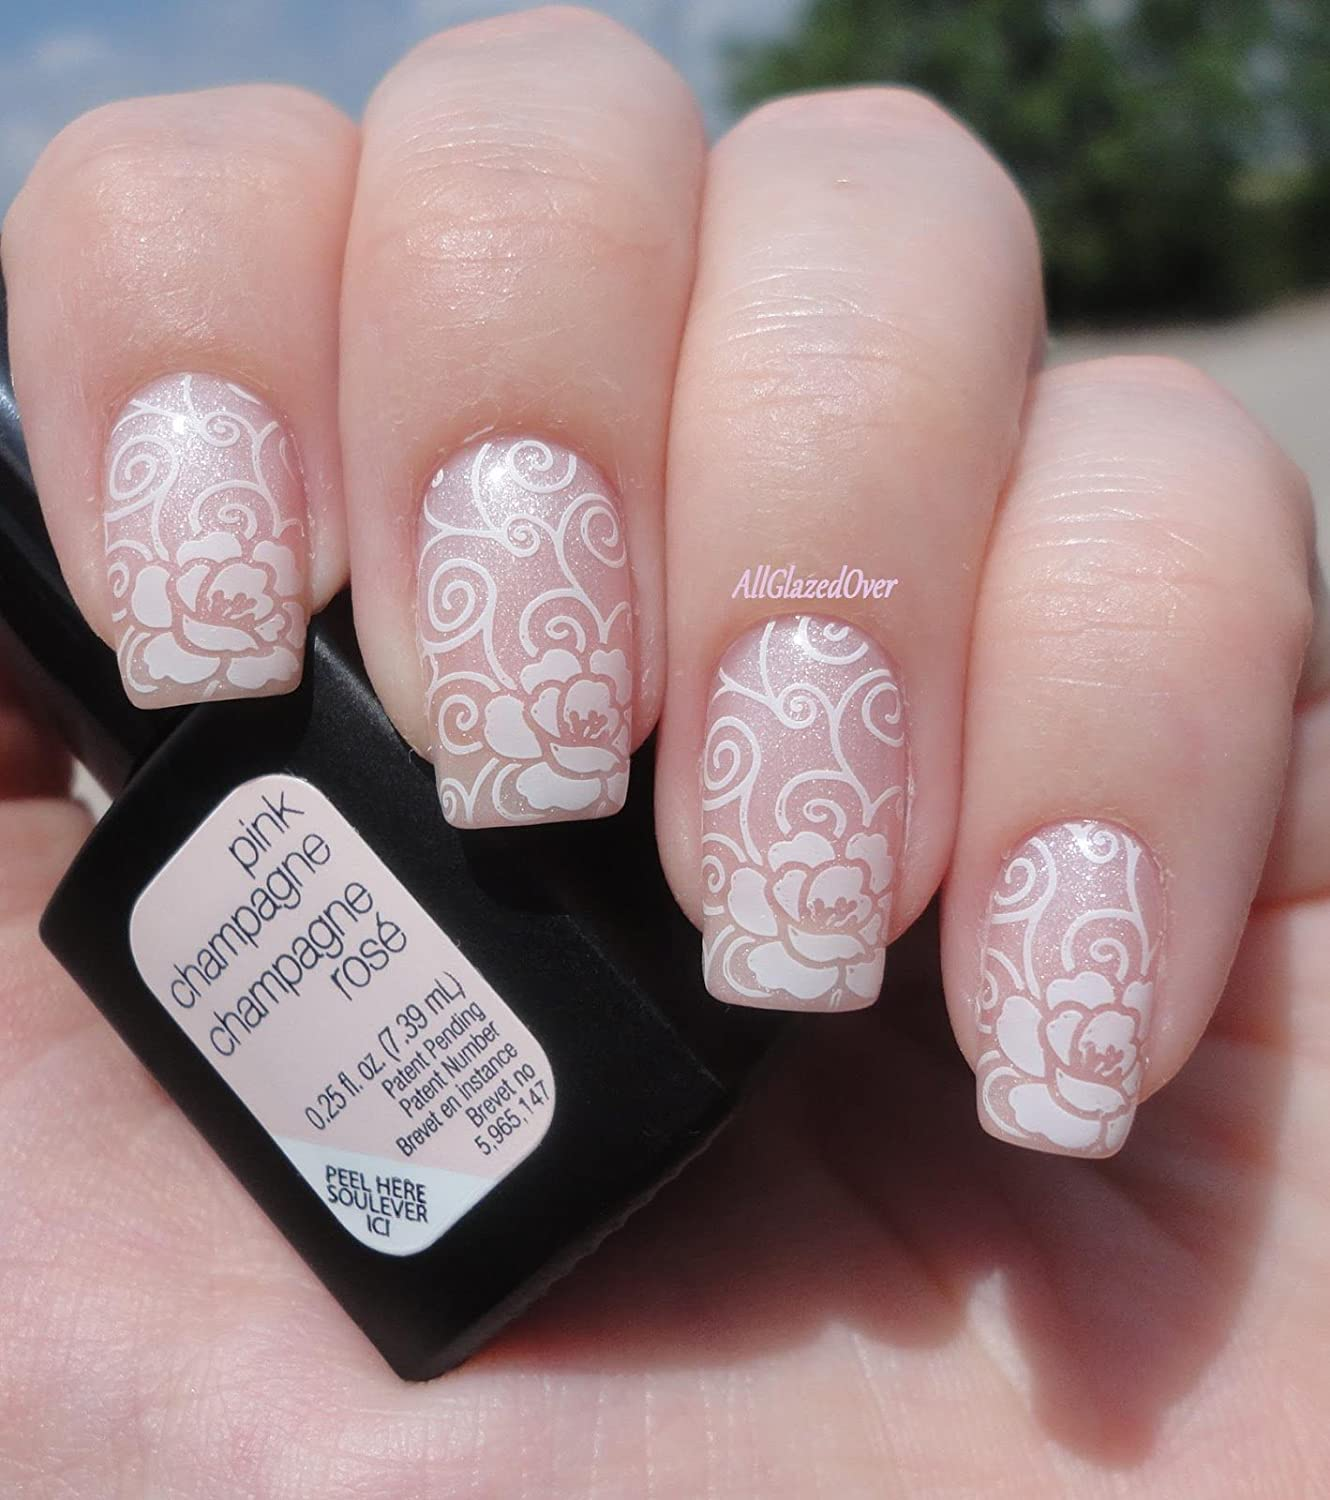 Amazon.com : PUEEN 2015 Nail Art Stamping Plate Celebration ...